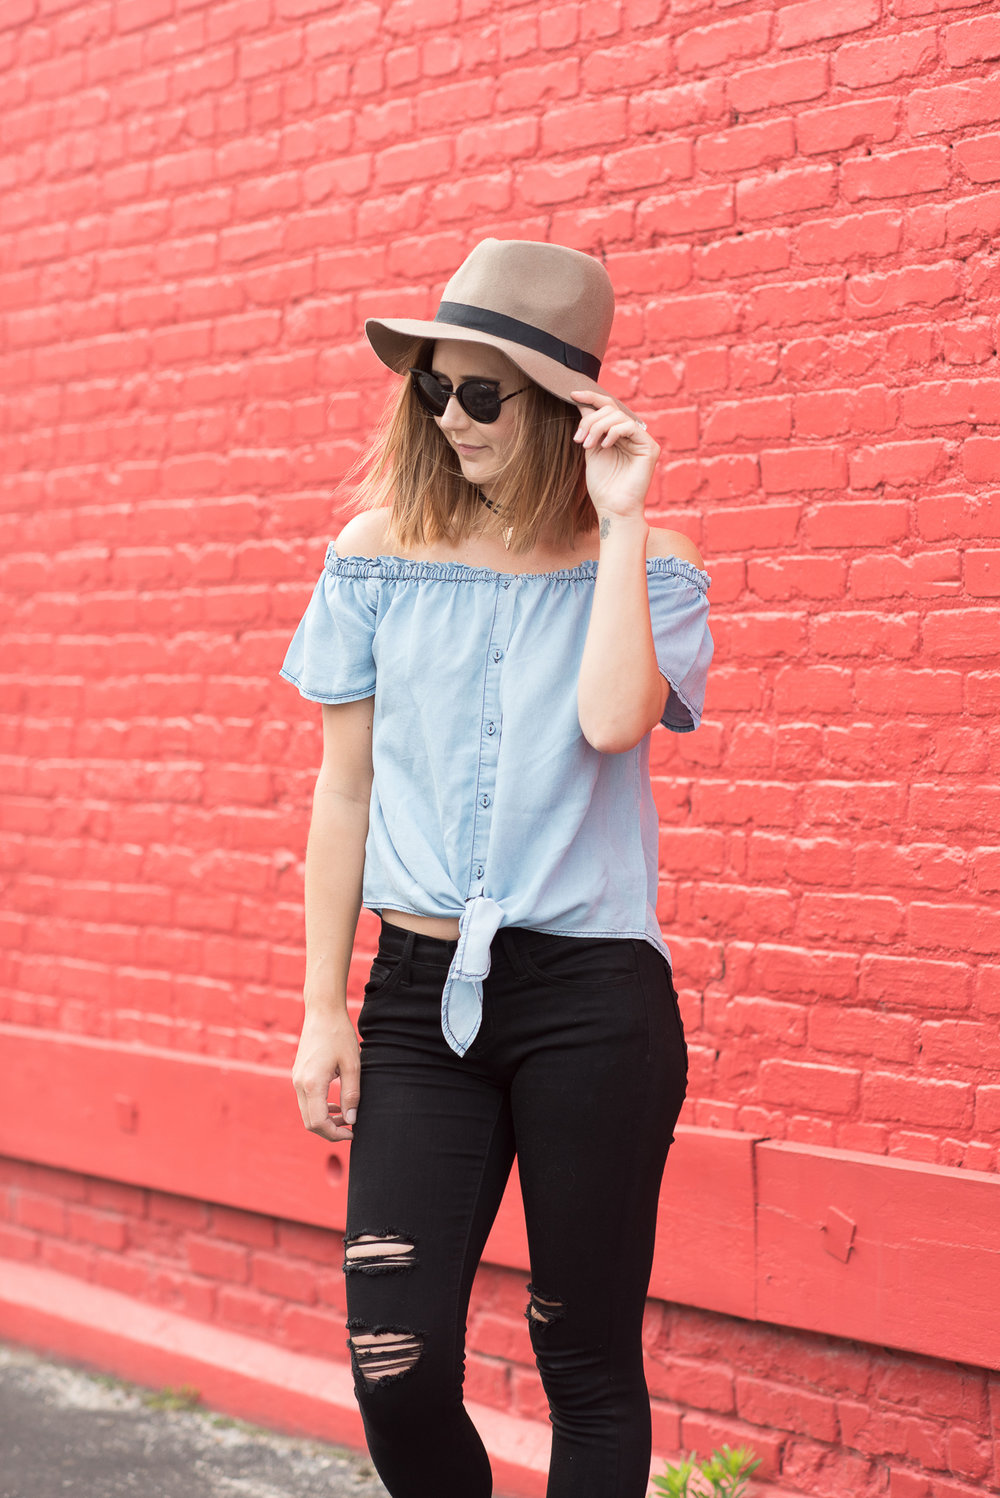 Top: Ferne Boutique  (Similar)  // Pants:  Ferne Boutique  // Hat: DSW  (Similar)